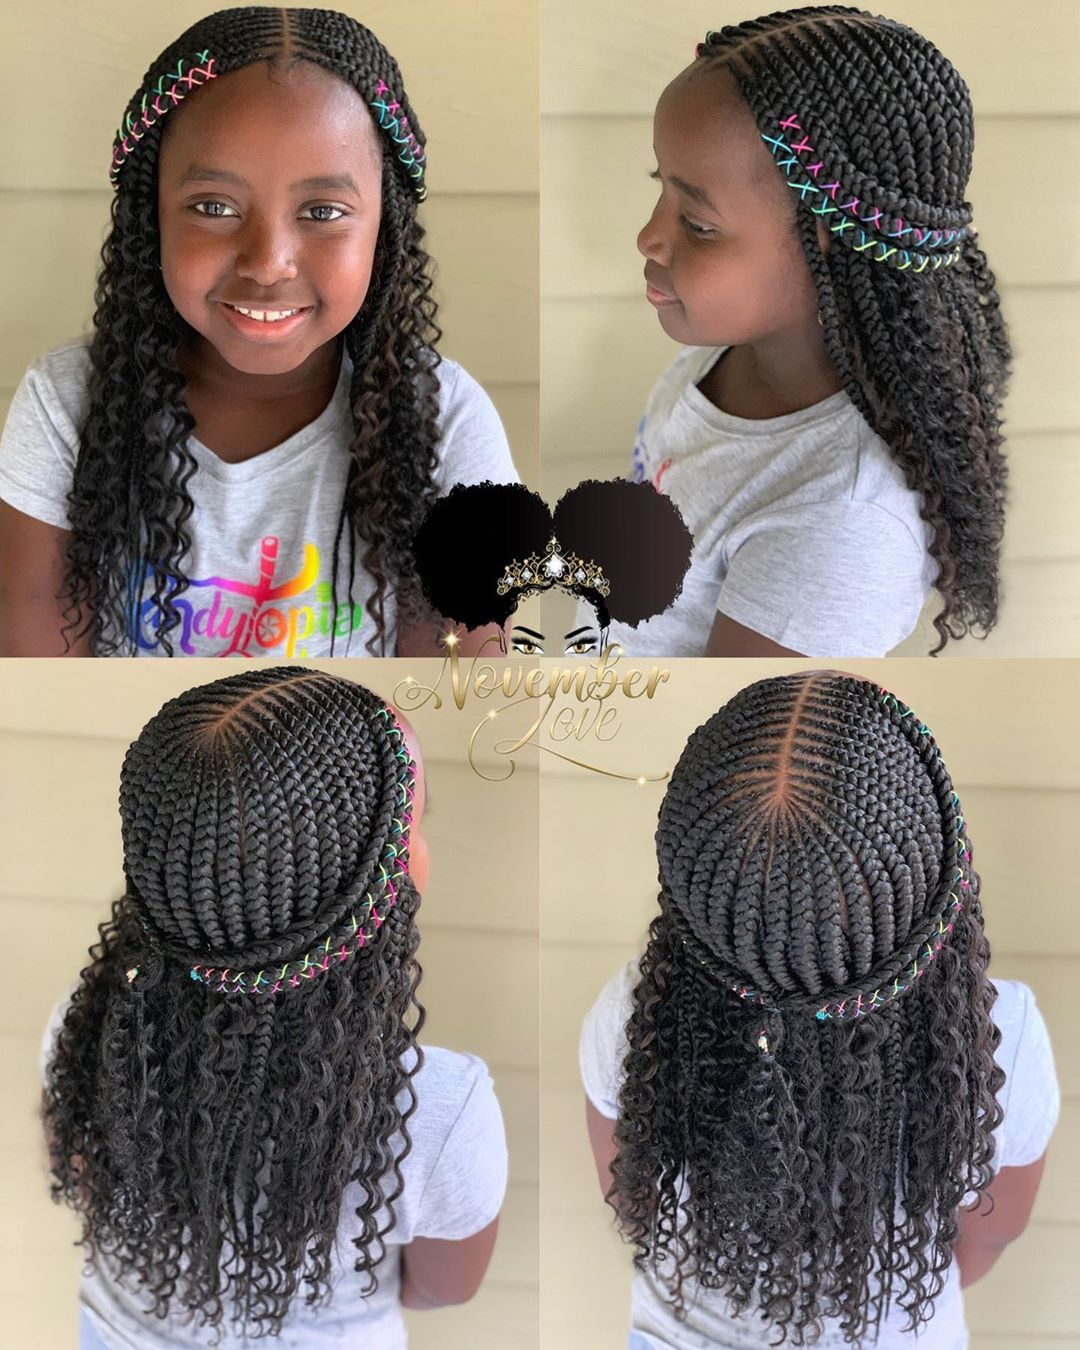 November Love On Instagram Boho Layer Braids Booking Link In Bio Apply Coupon Code At Check Kids Braided Hairstyles Black Girl Braids Black Kids Hairstyles